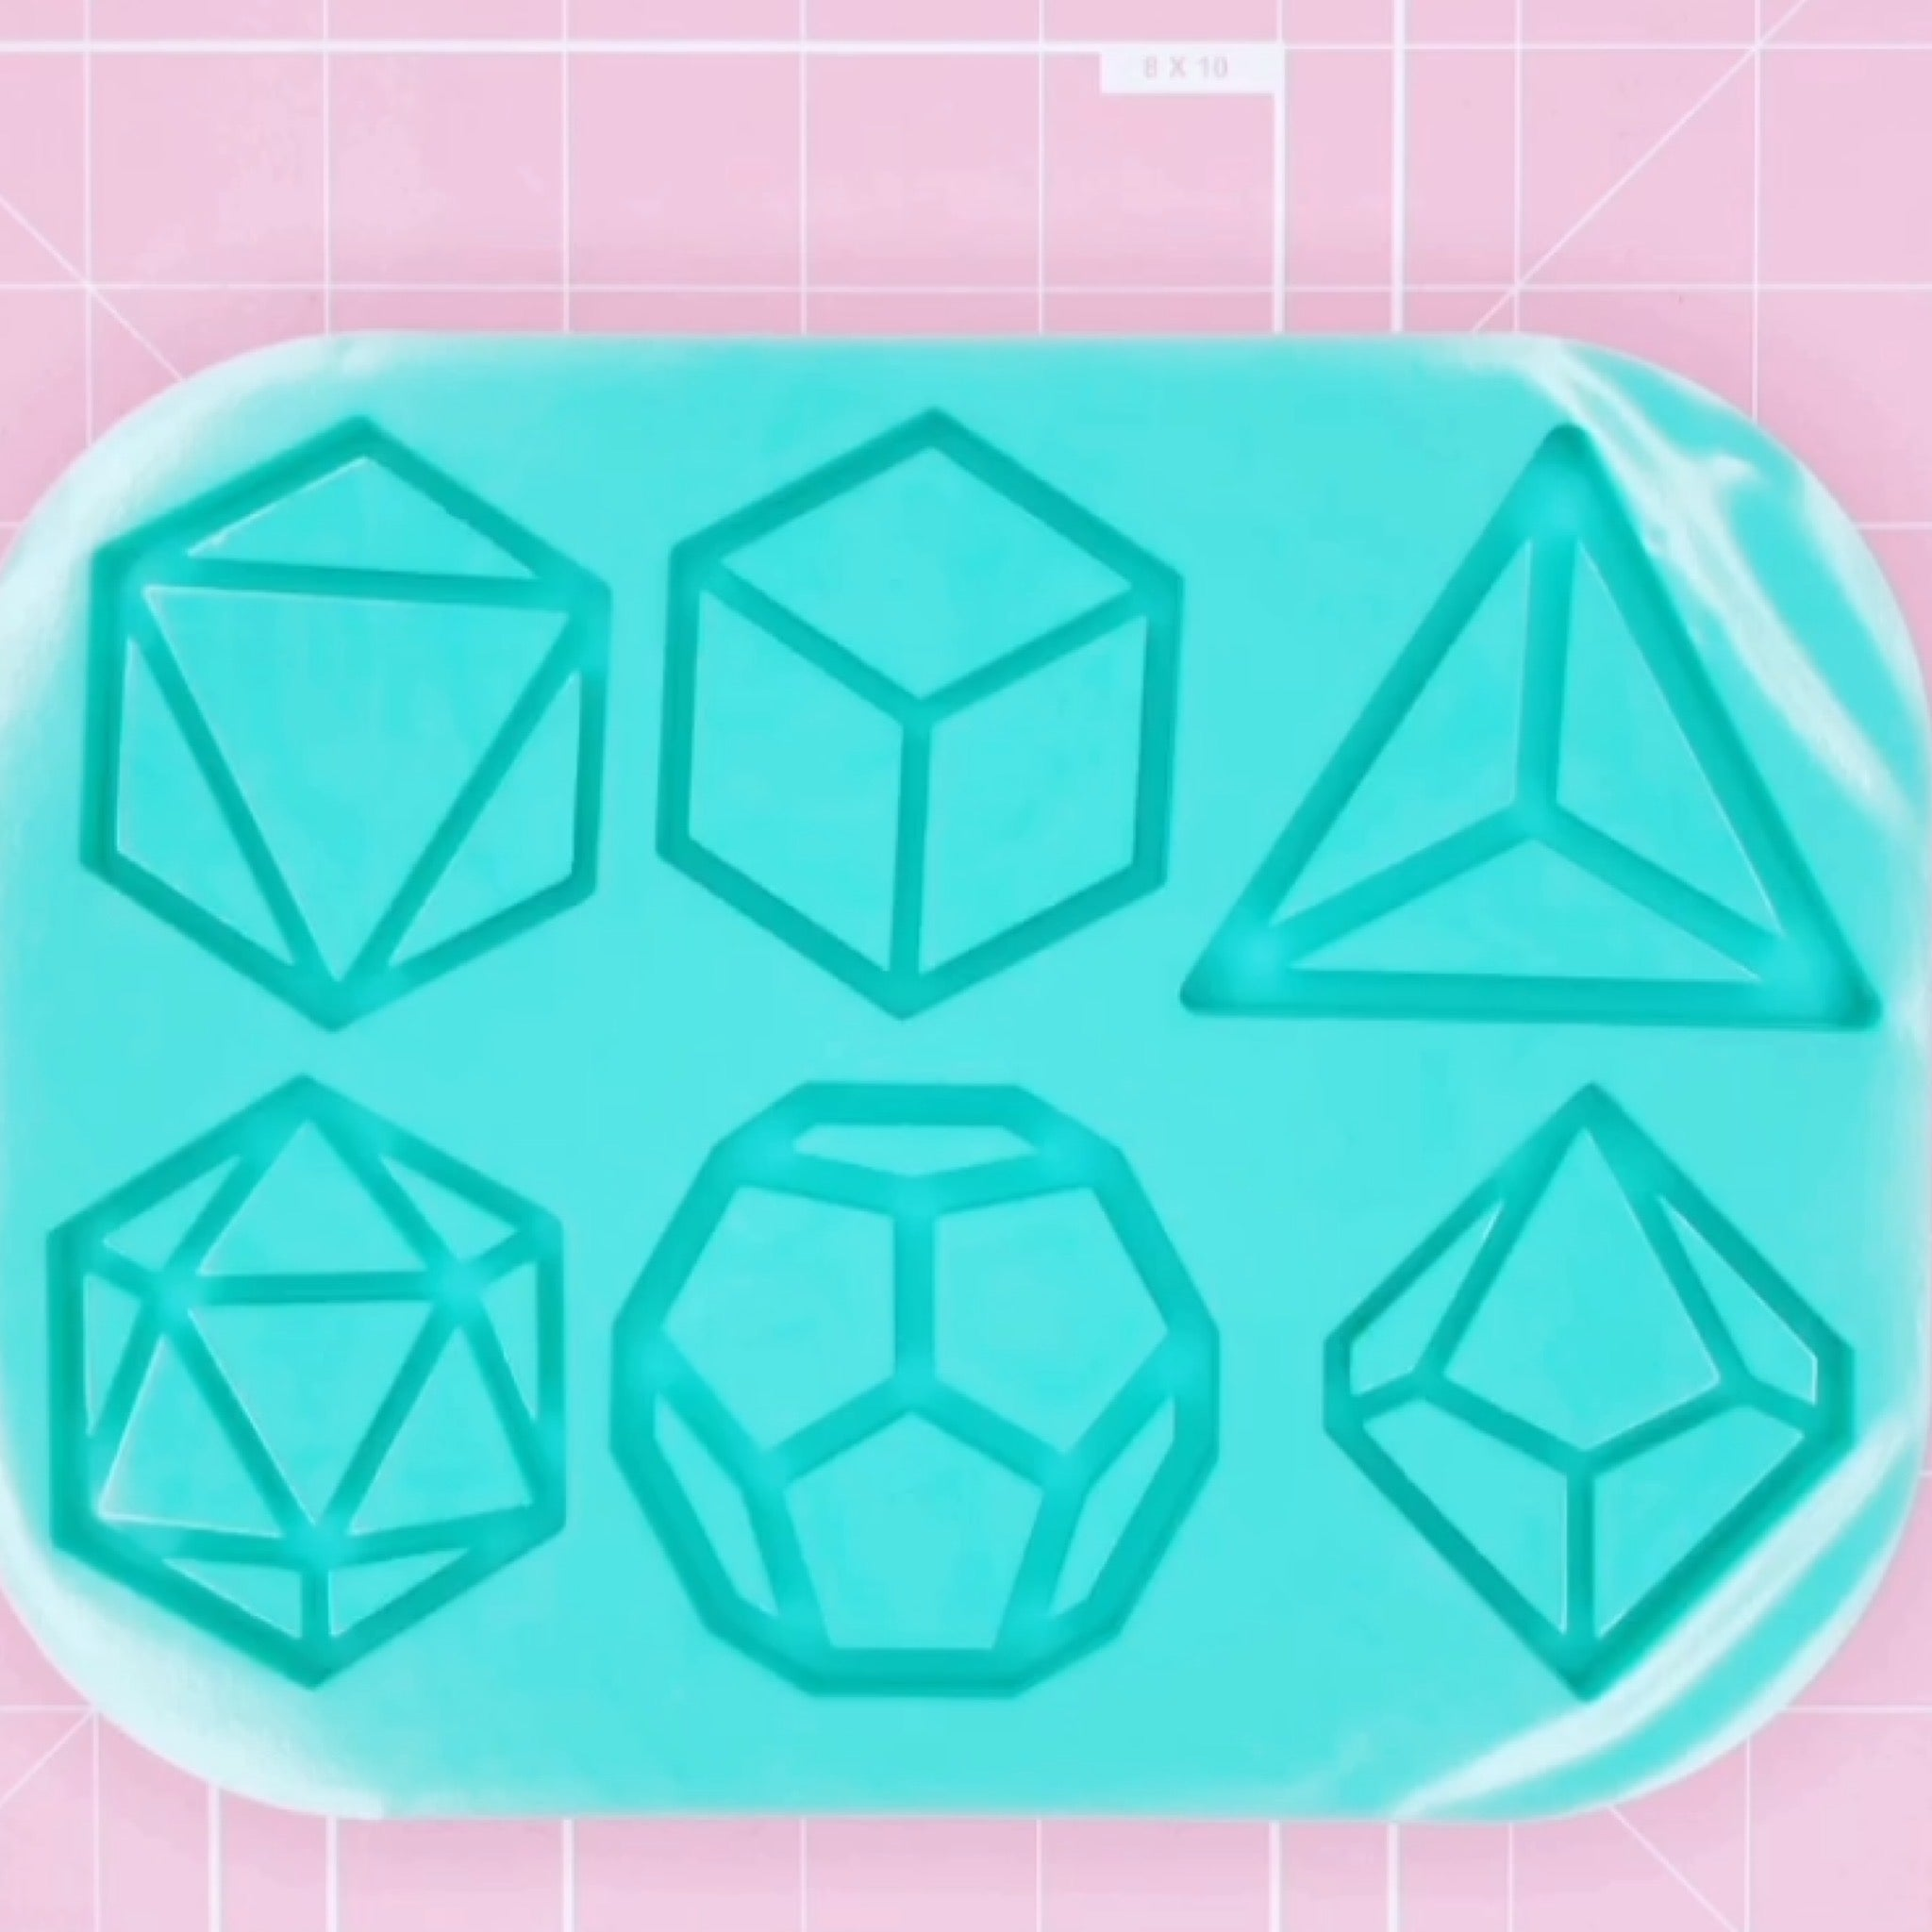 XL Mold - Tabletop RPG Dice Palette (Backed) - Chala Atelier & Supplies